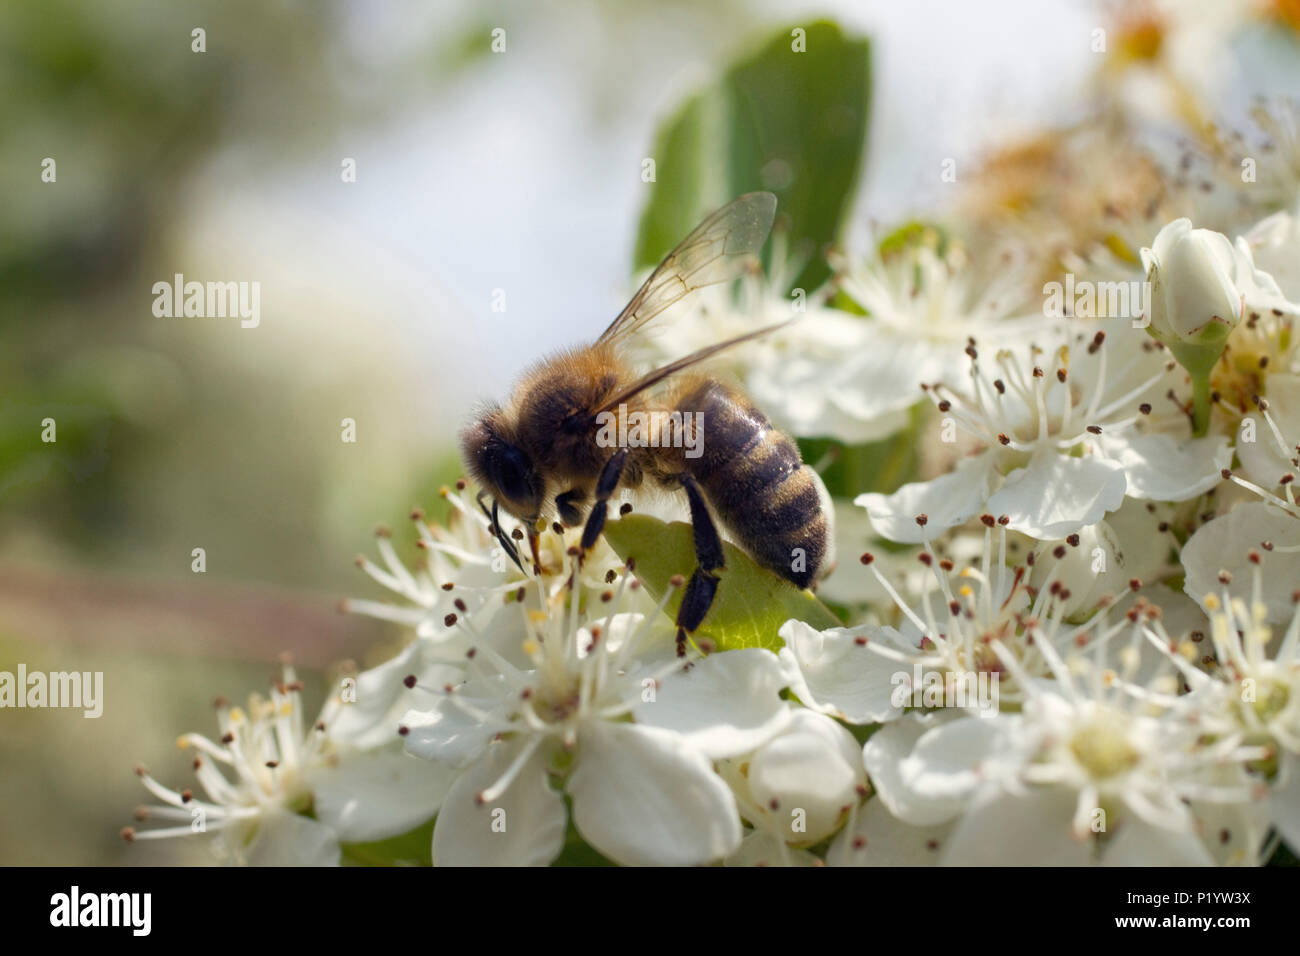 Close-up on a bee gathering nectar on a bloom hedge. - Stock Image